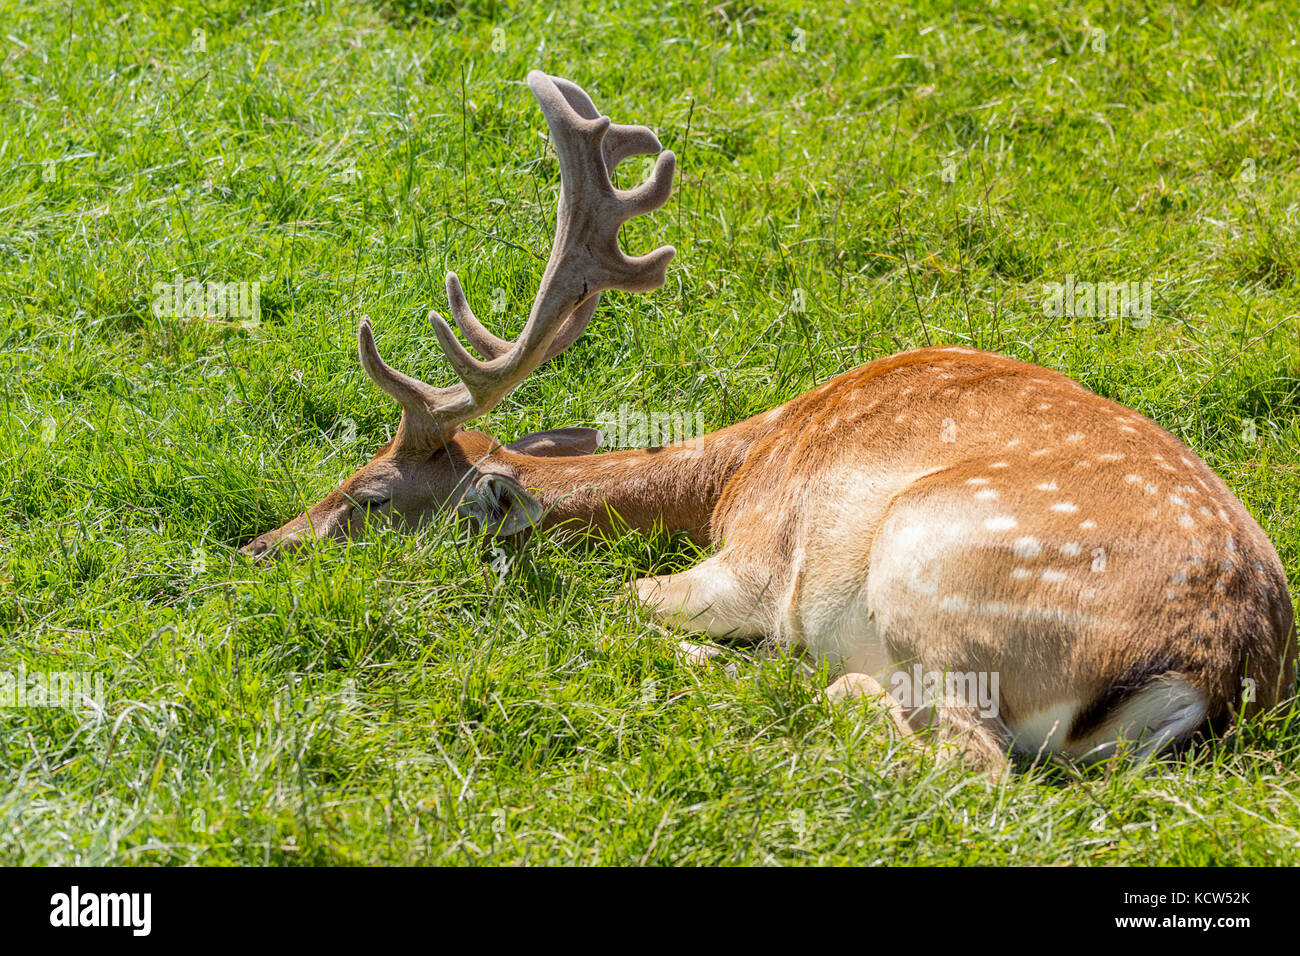 Fallow deer lying down on grass at British wildlife centre in Lingfield Surrey UK. Showing blade type antlers and - Stock Image